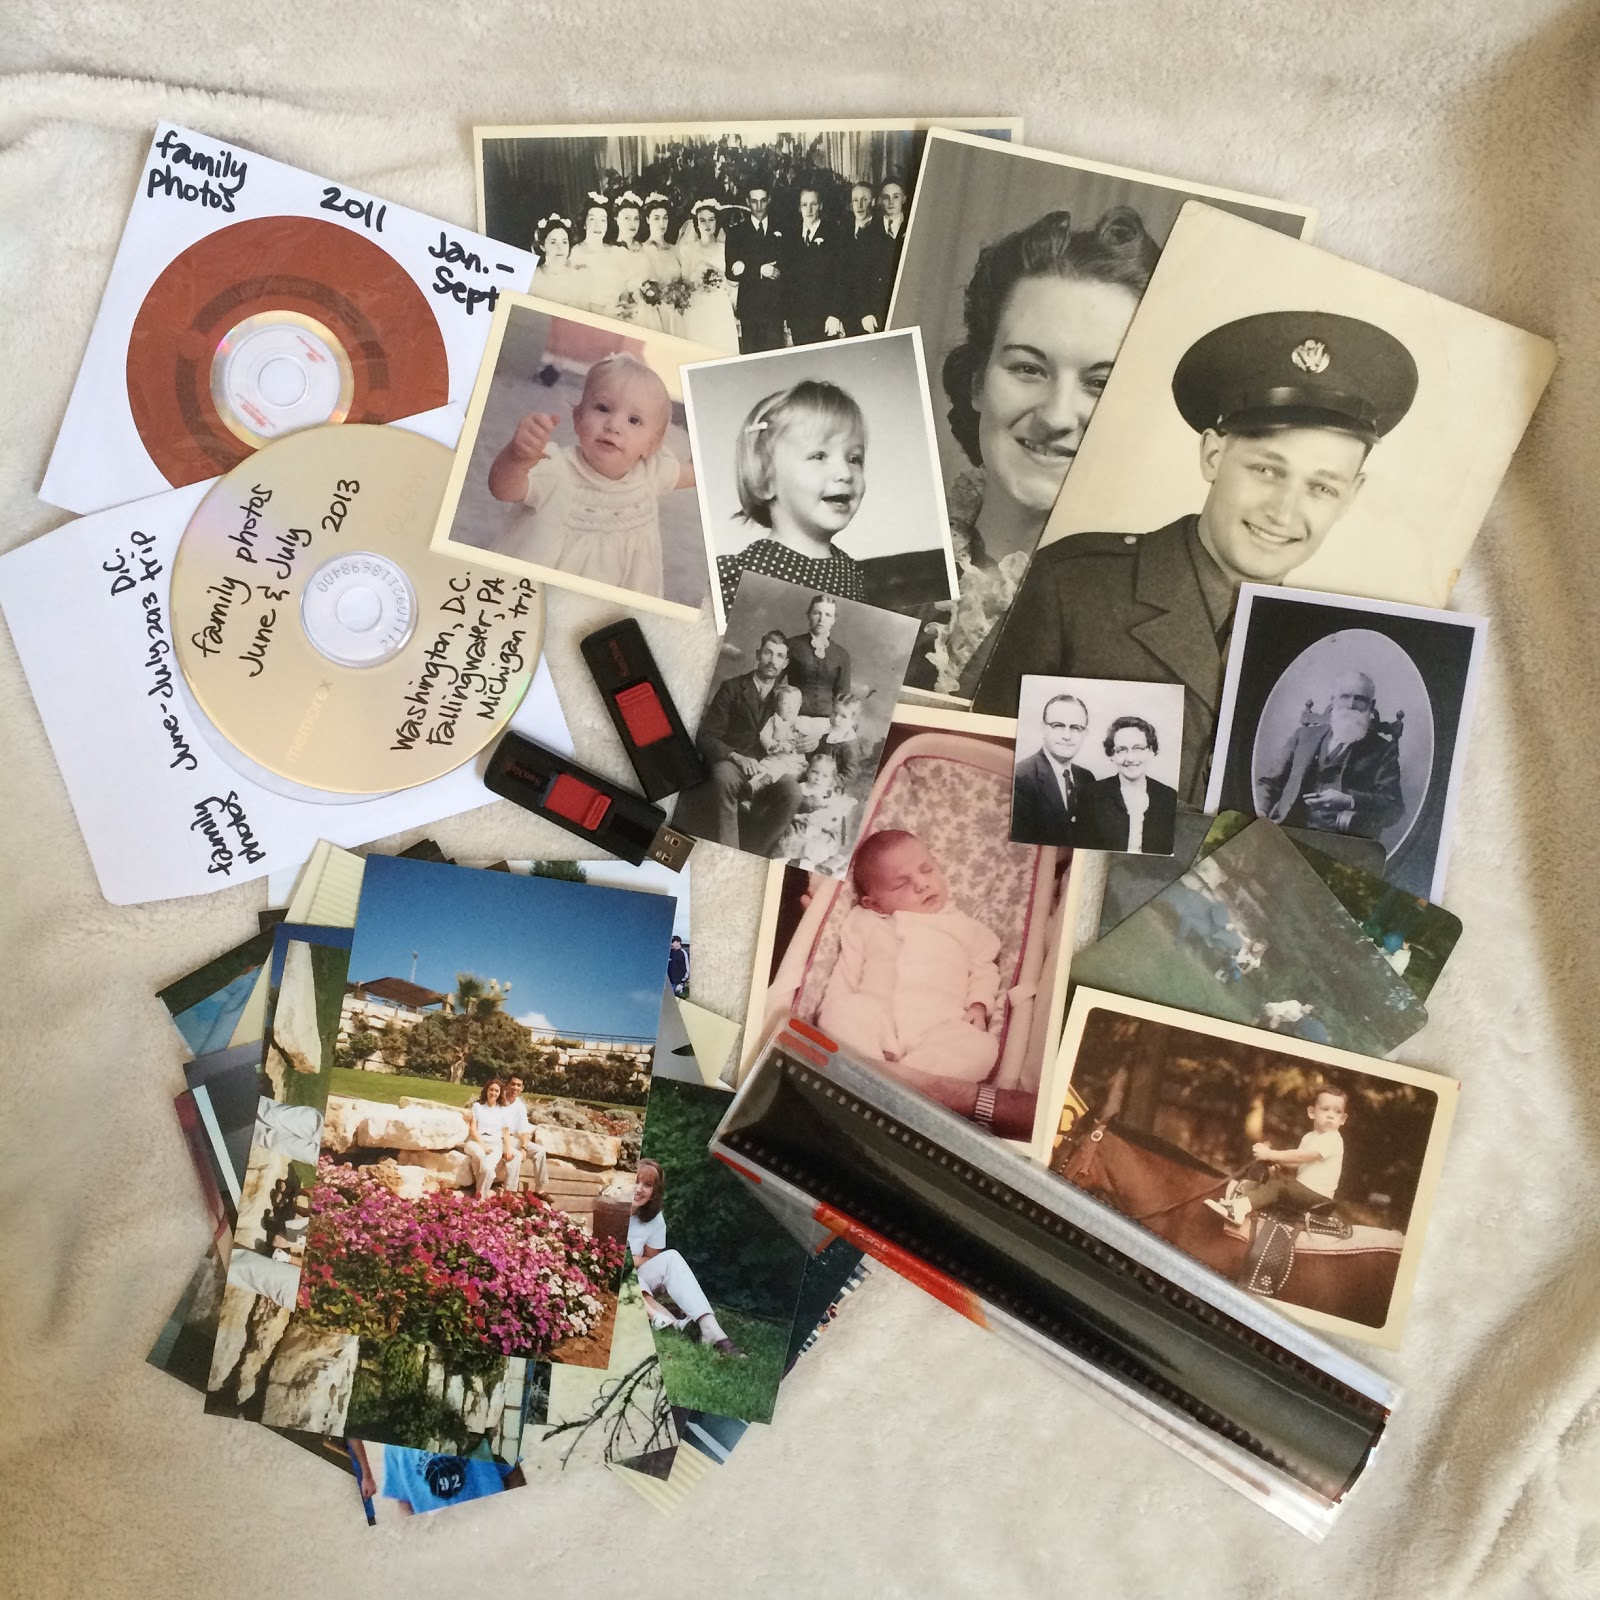 How to scrapbook faster - Or Find A Friend In The Same I Ve Got Lots Of Photos And I Need To Do Something With Them Predicament And Work Together It Makes It More Fun